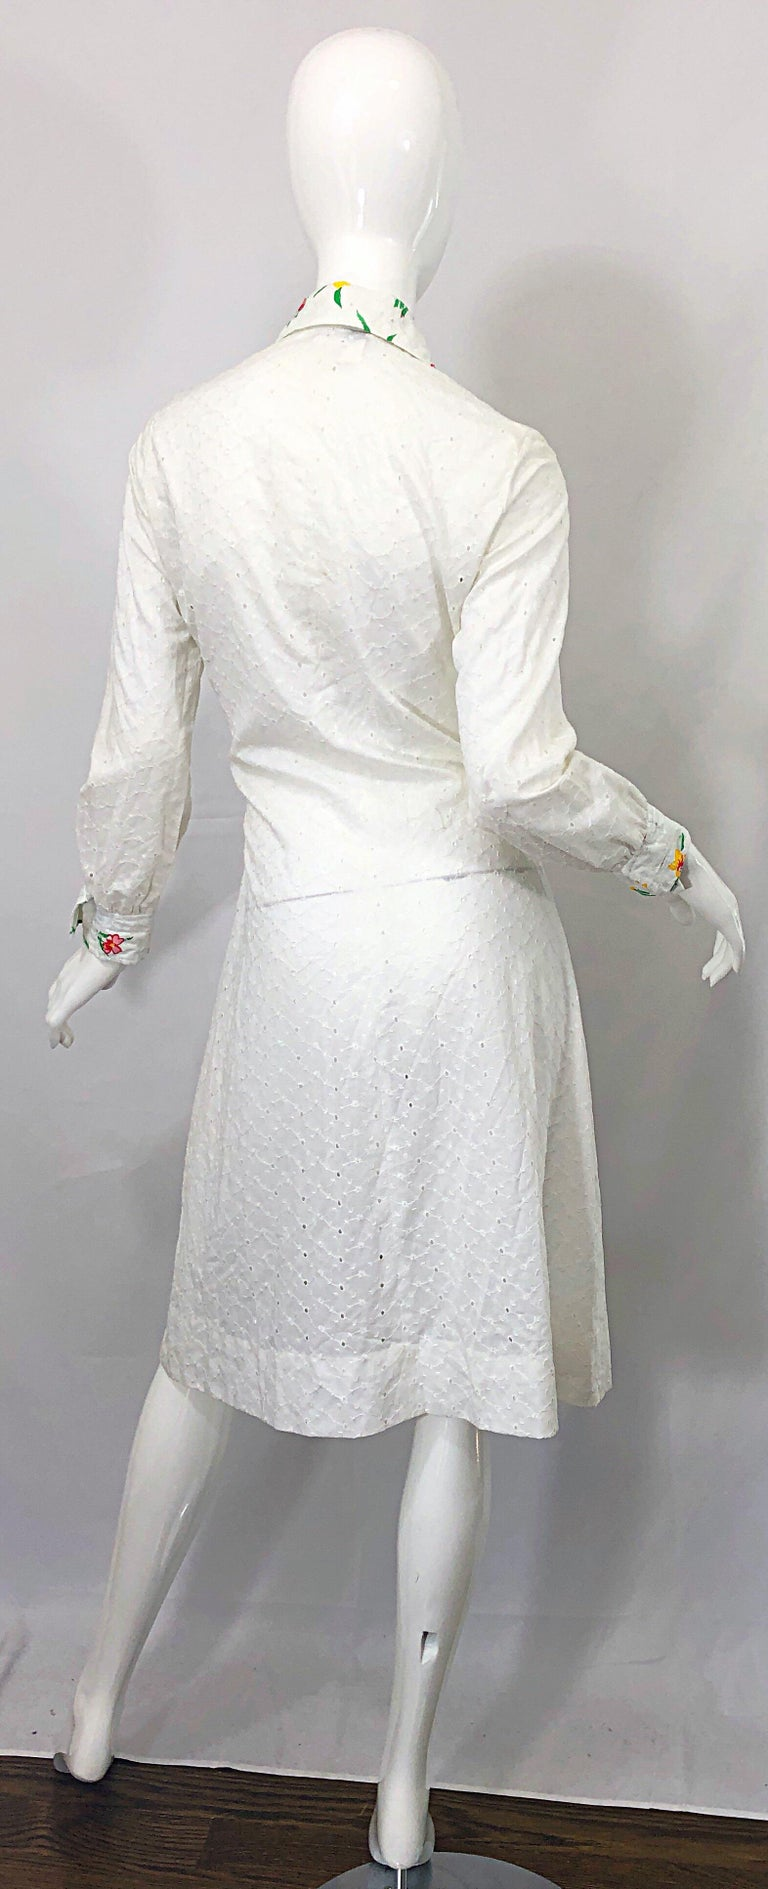 1970s Joseph Magnin White Eyelet Cotton Embrodiered Vintage 70s Shirt Dress In Excellent Condition For Sale In Chicago, IL